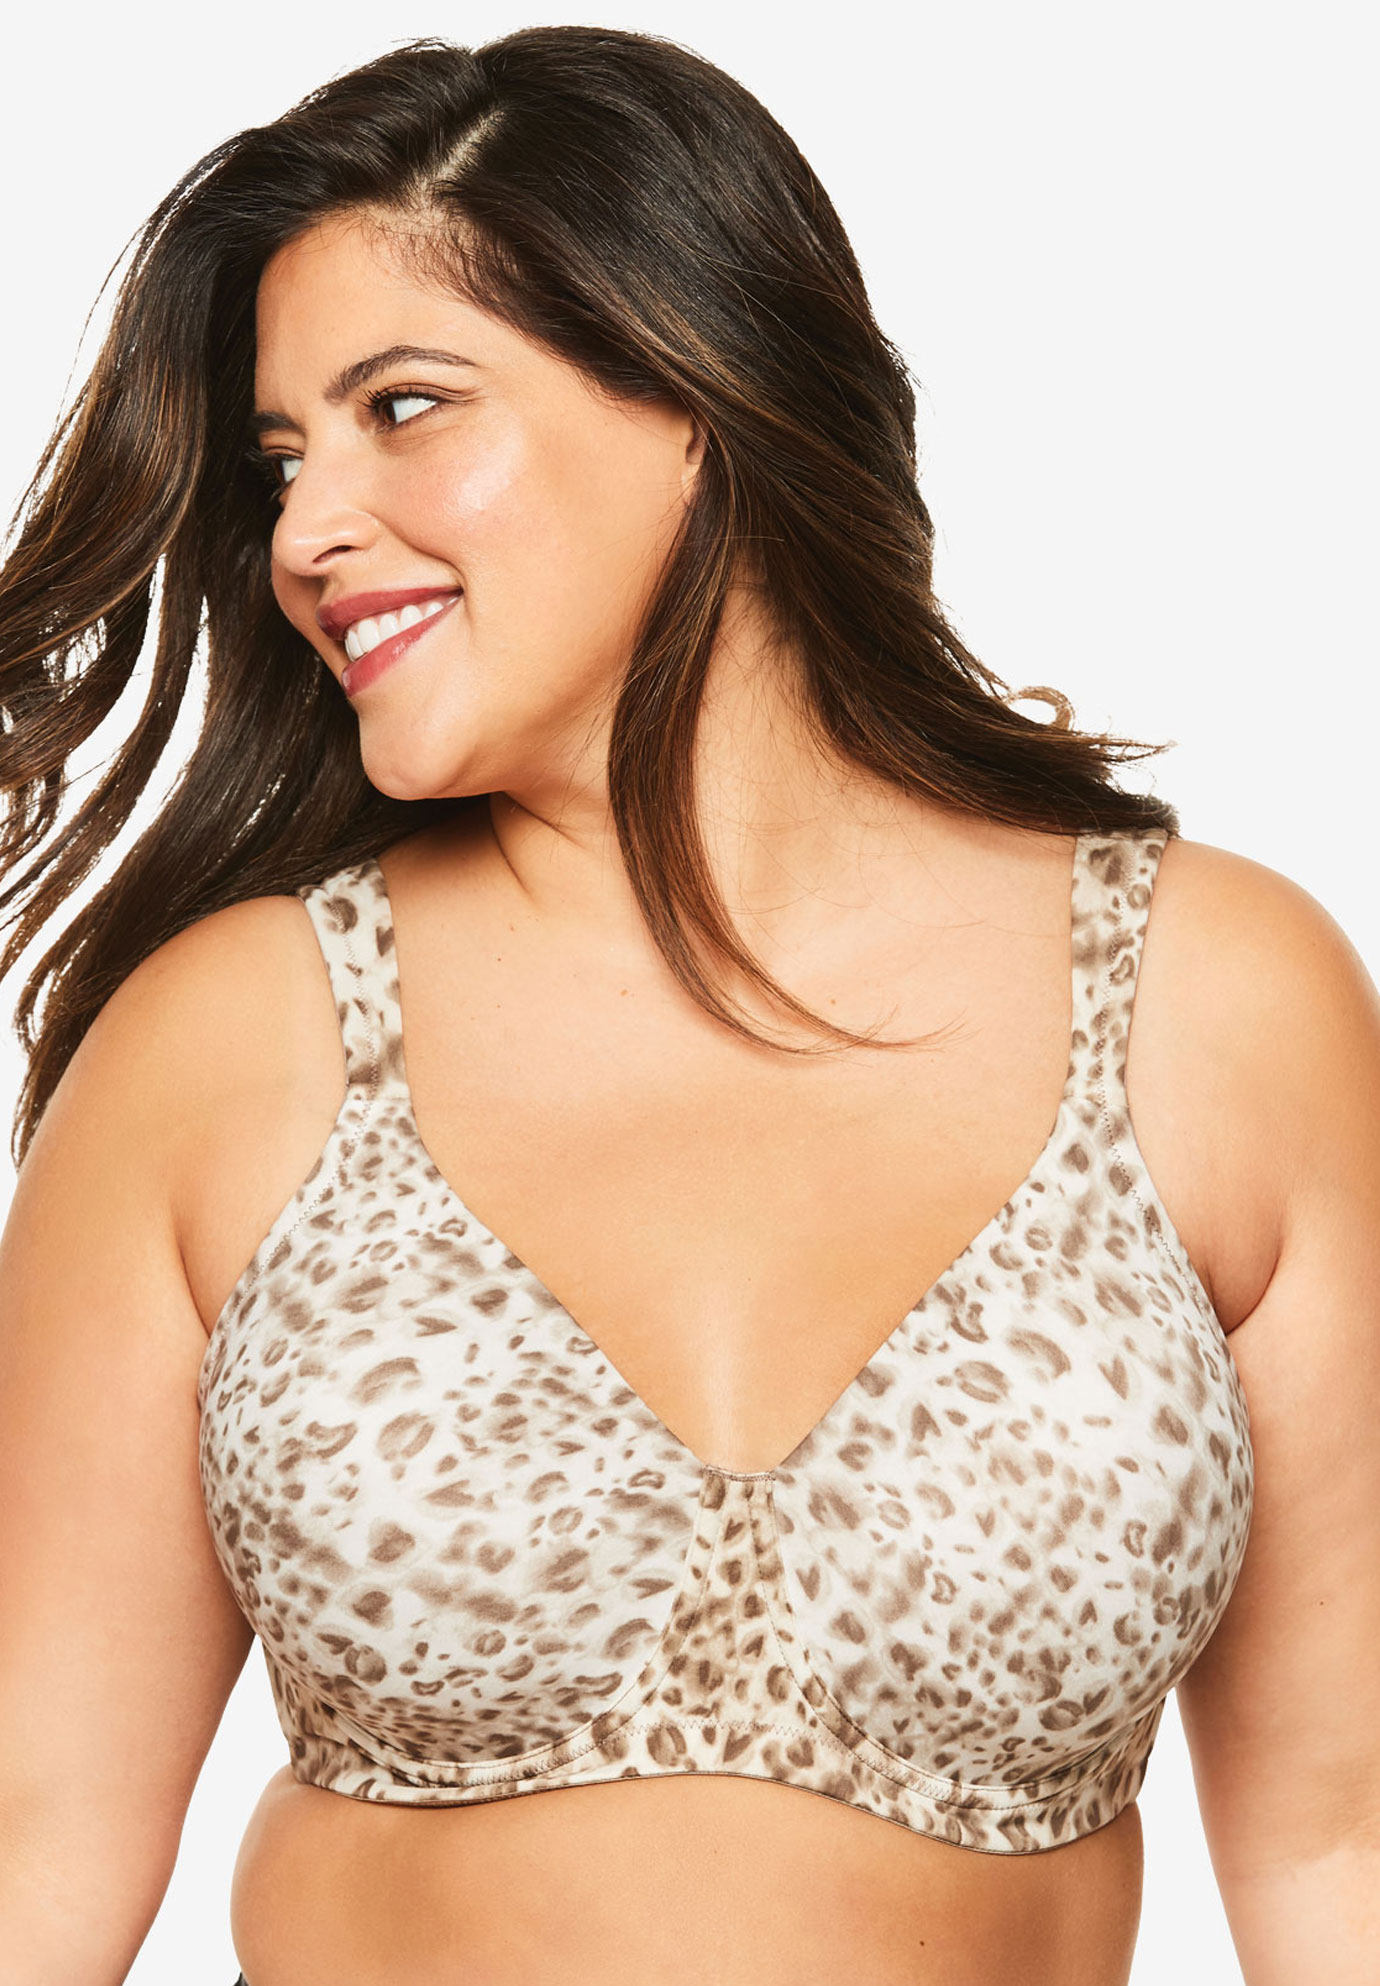 Leading Lady® Brigitte Full Coverage Seamless Underwire Bra #5028,